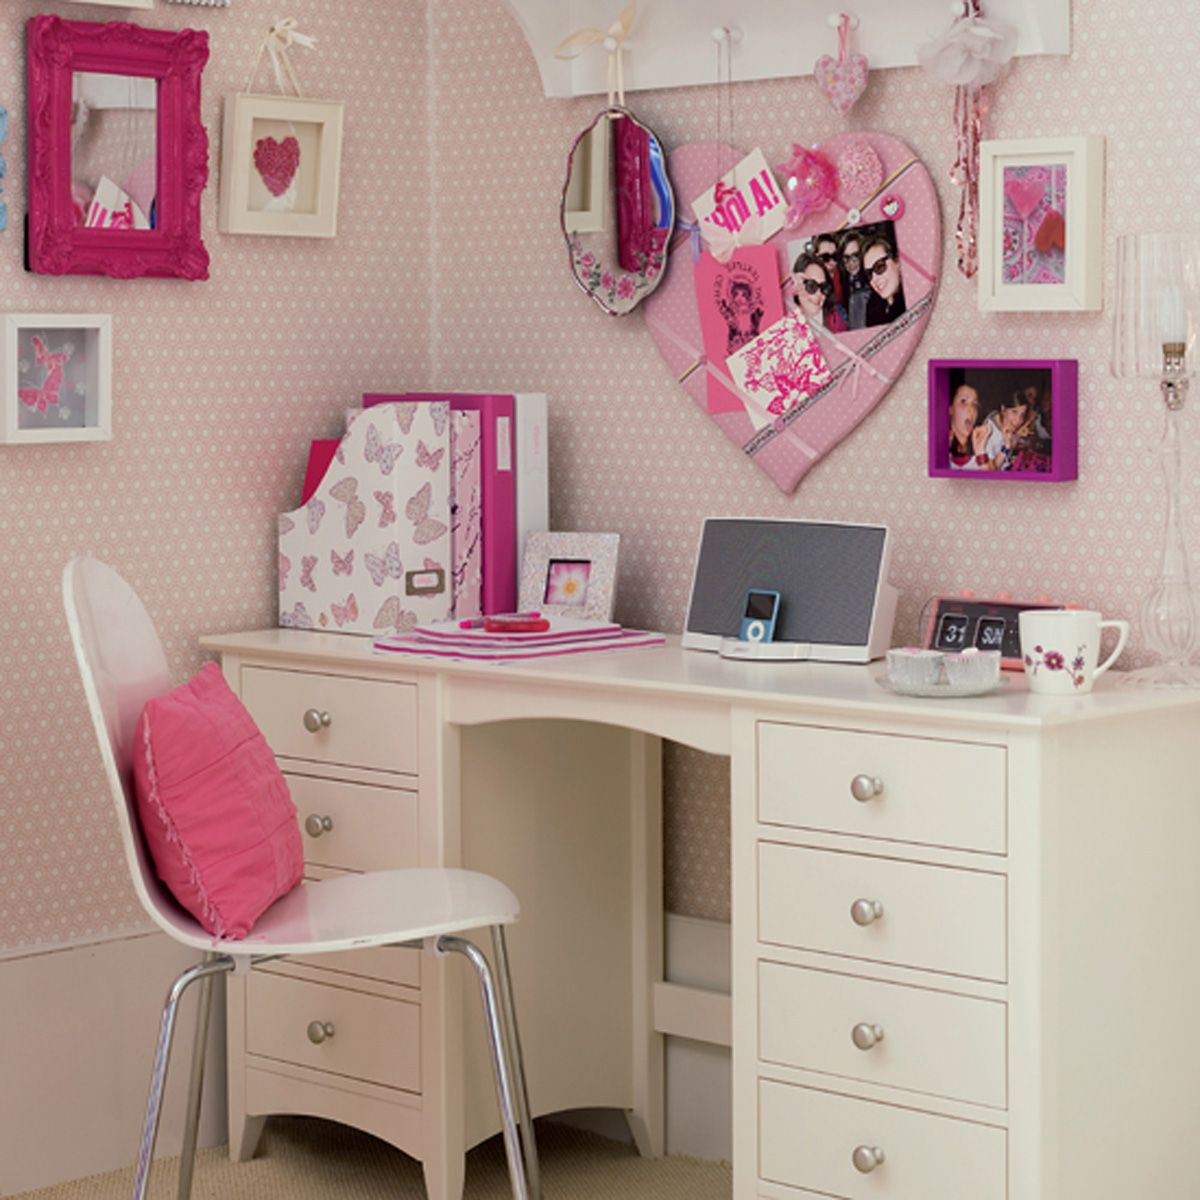 Girls Bedroom Desks Teensbedroomgorgiandesksforteenagerswithwhitepainted8